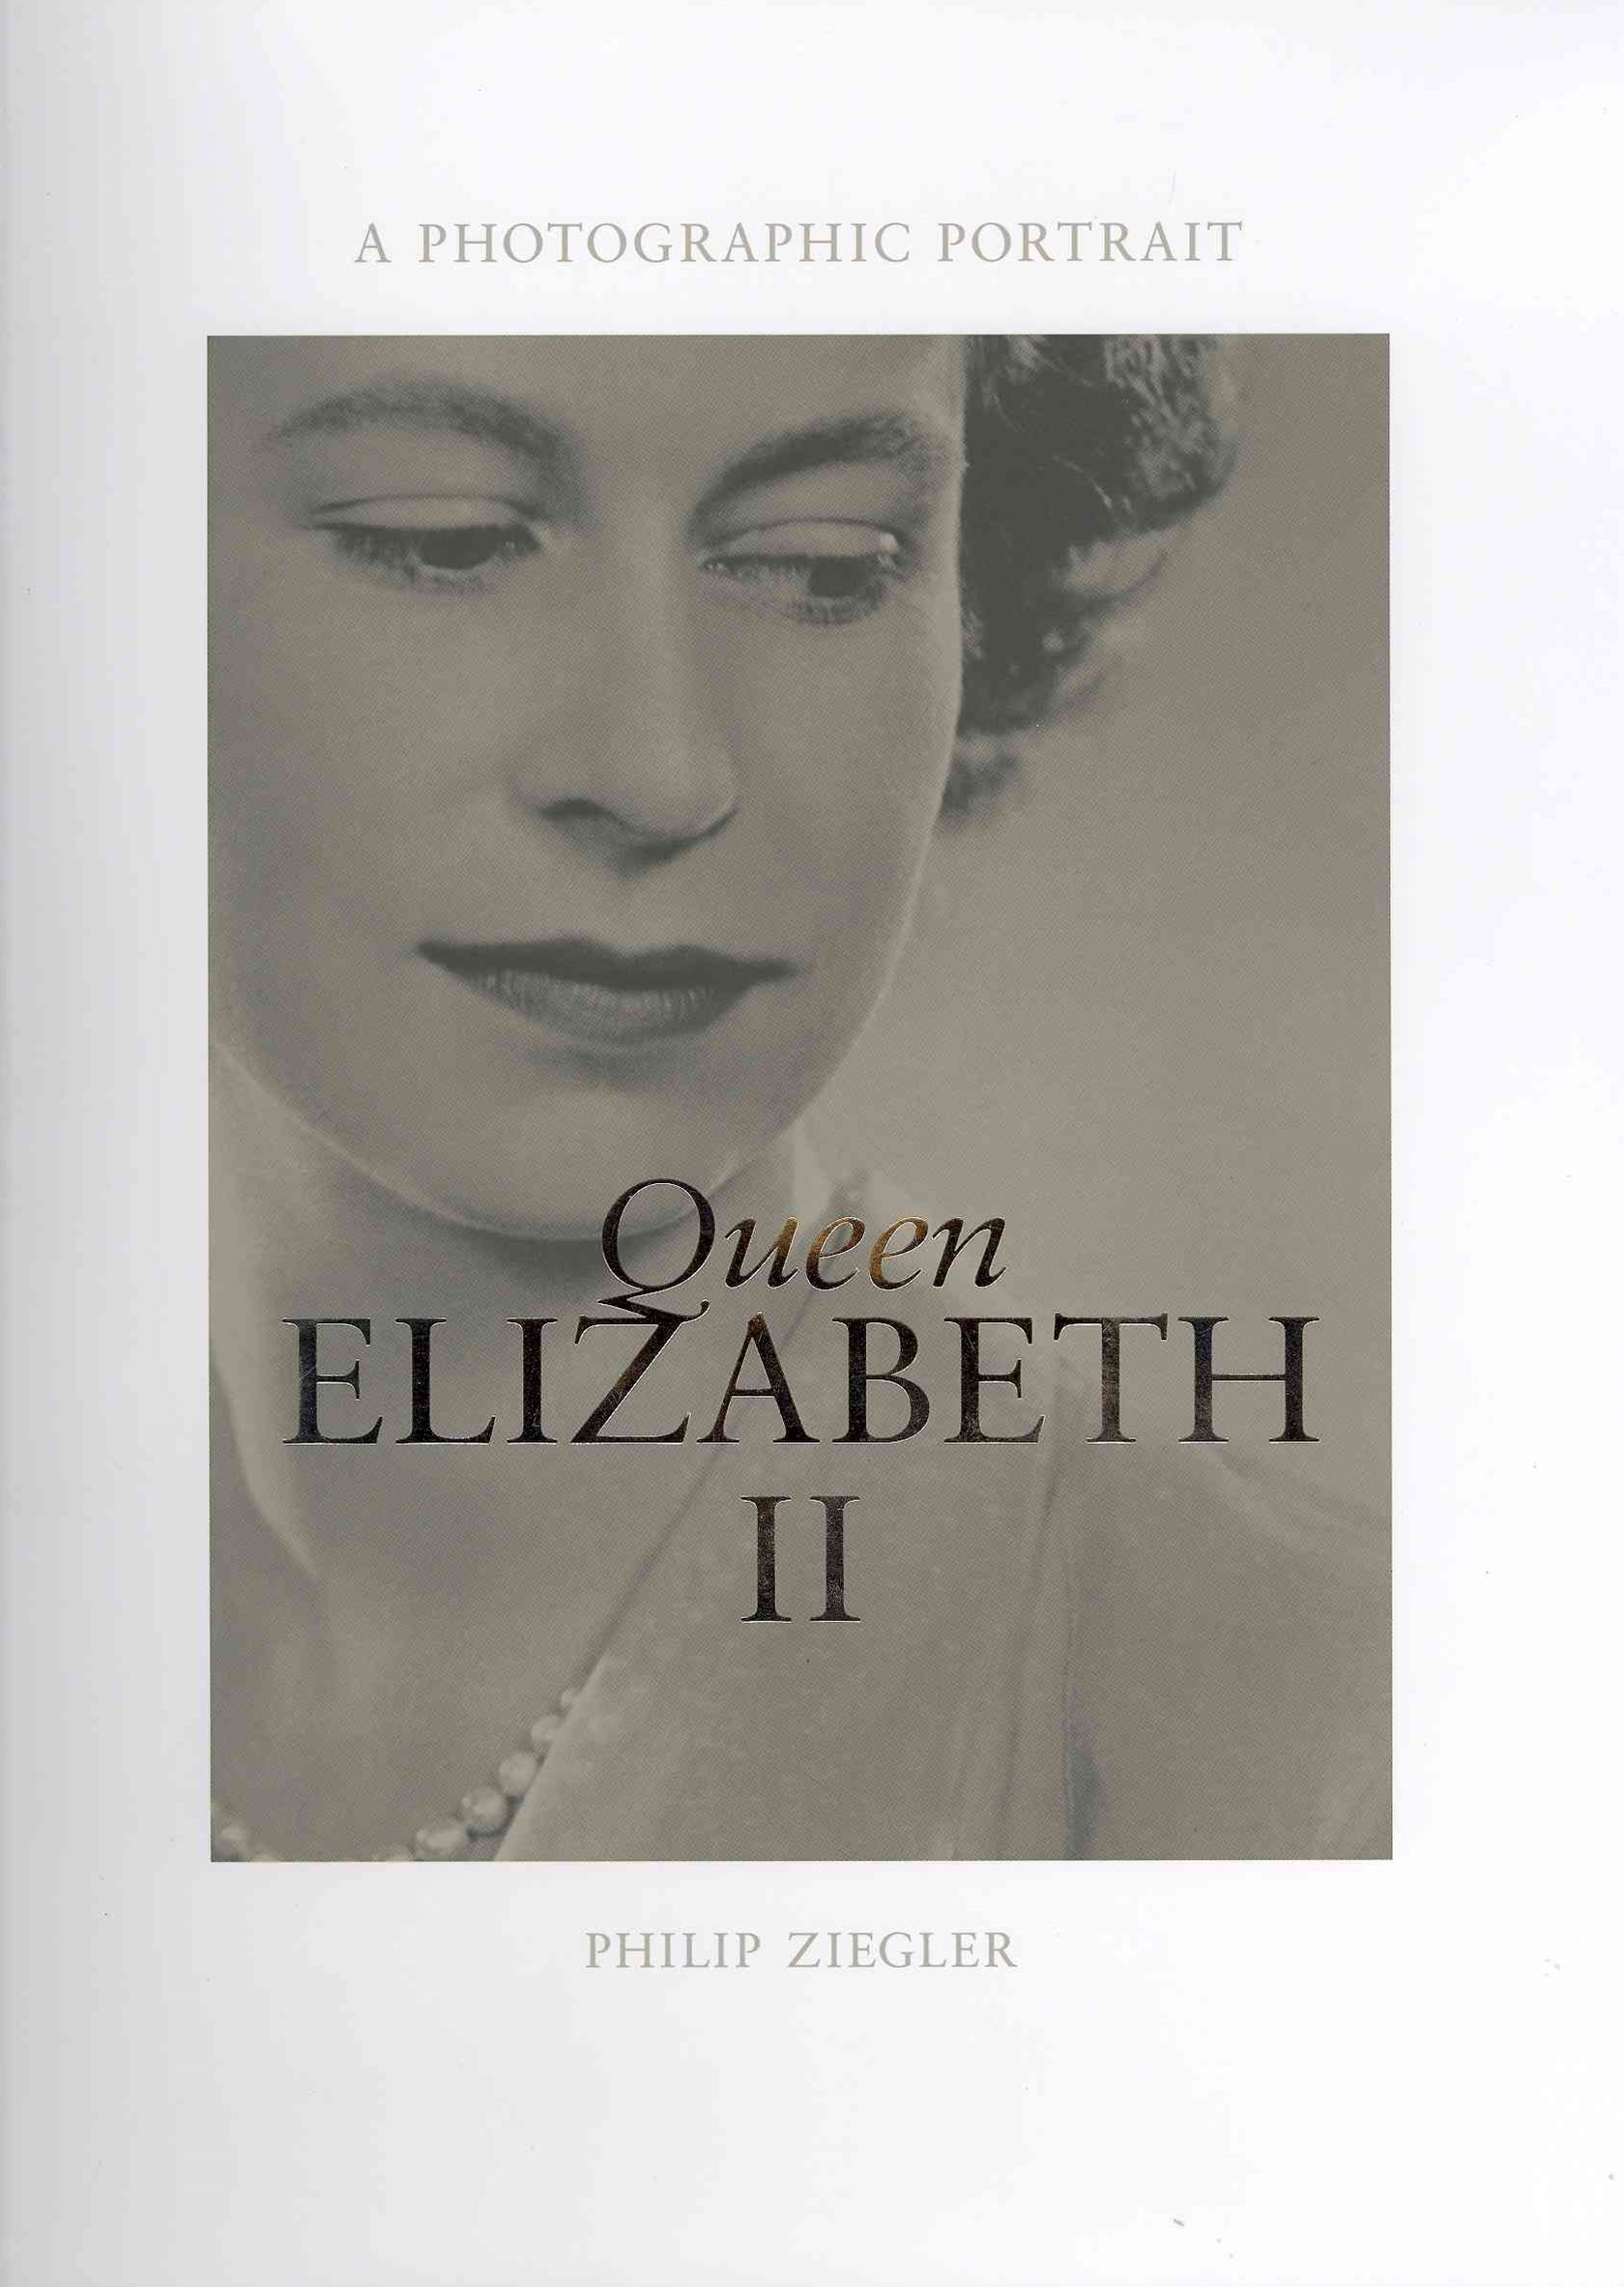 Queen Elizabeth II: A Photographic Portrait